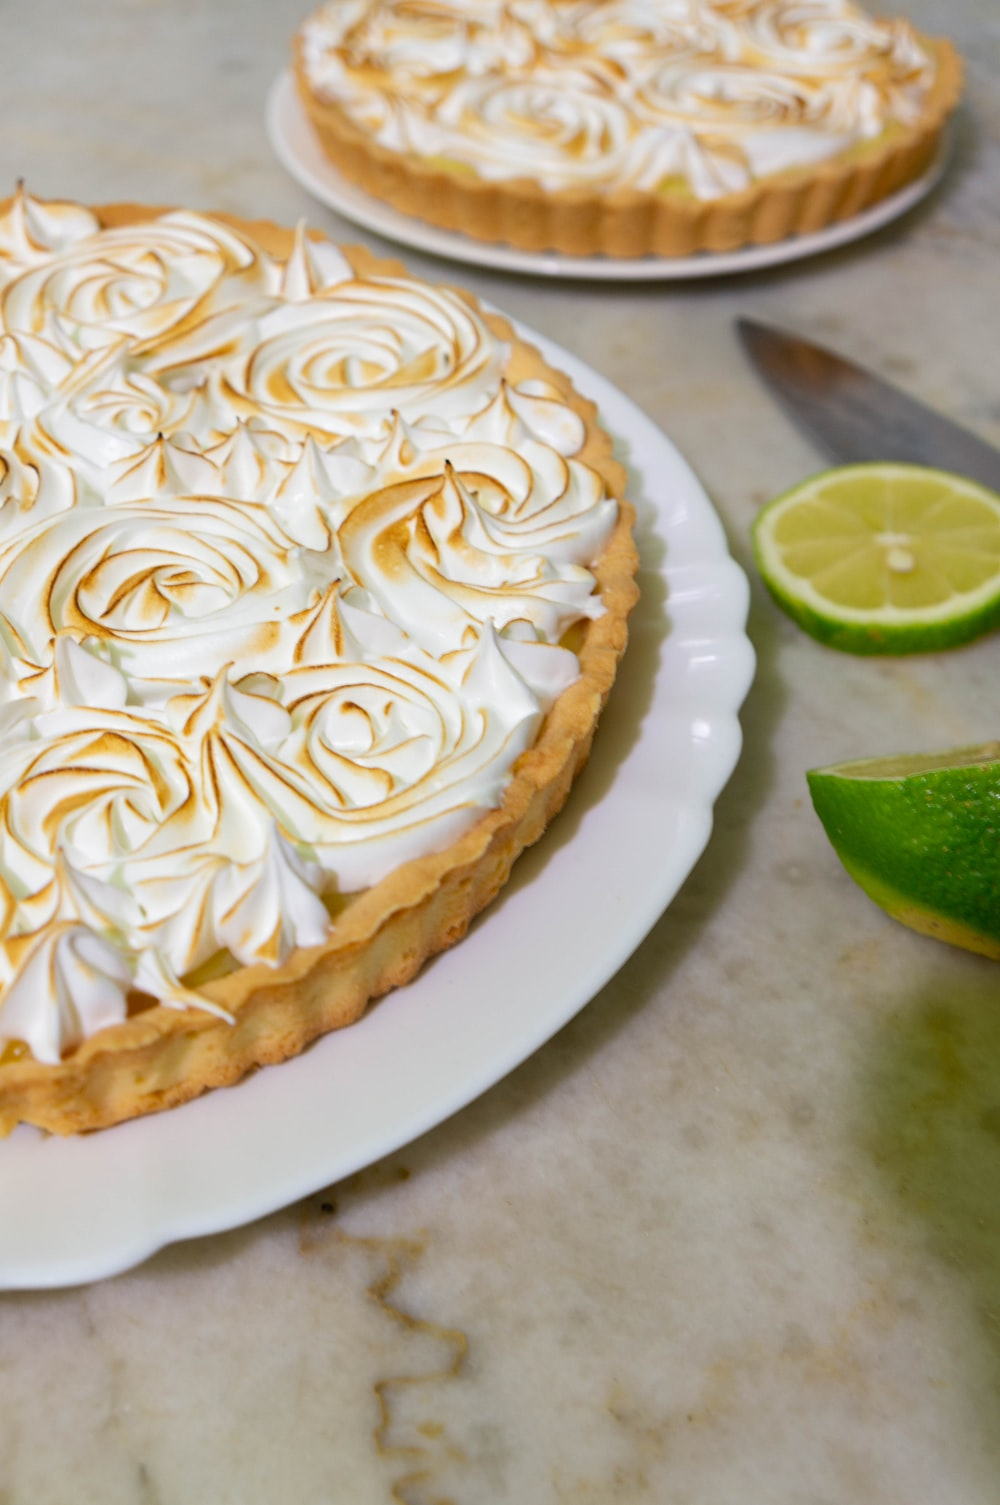 white icing cake with sliced of green citrus fruit on white ceramic plate